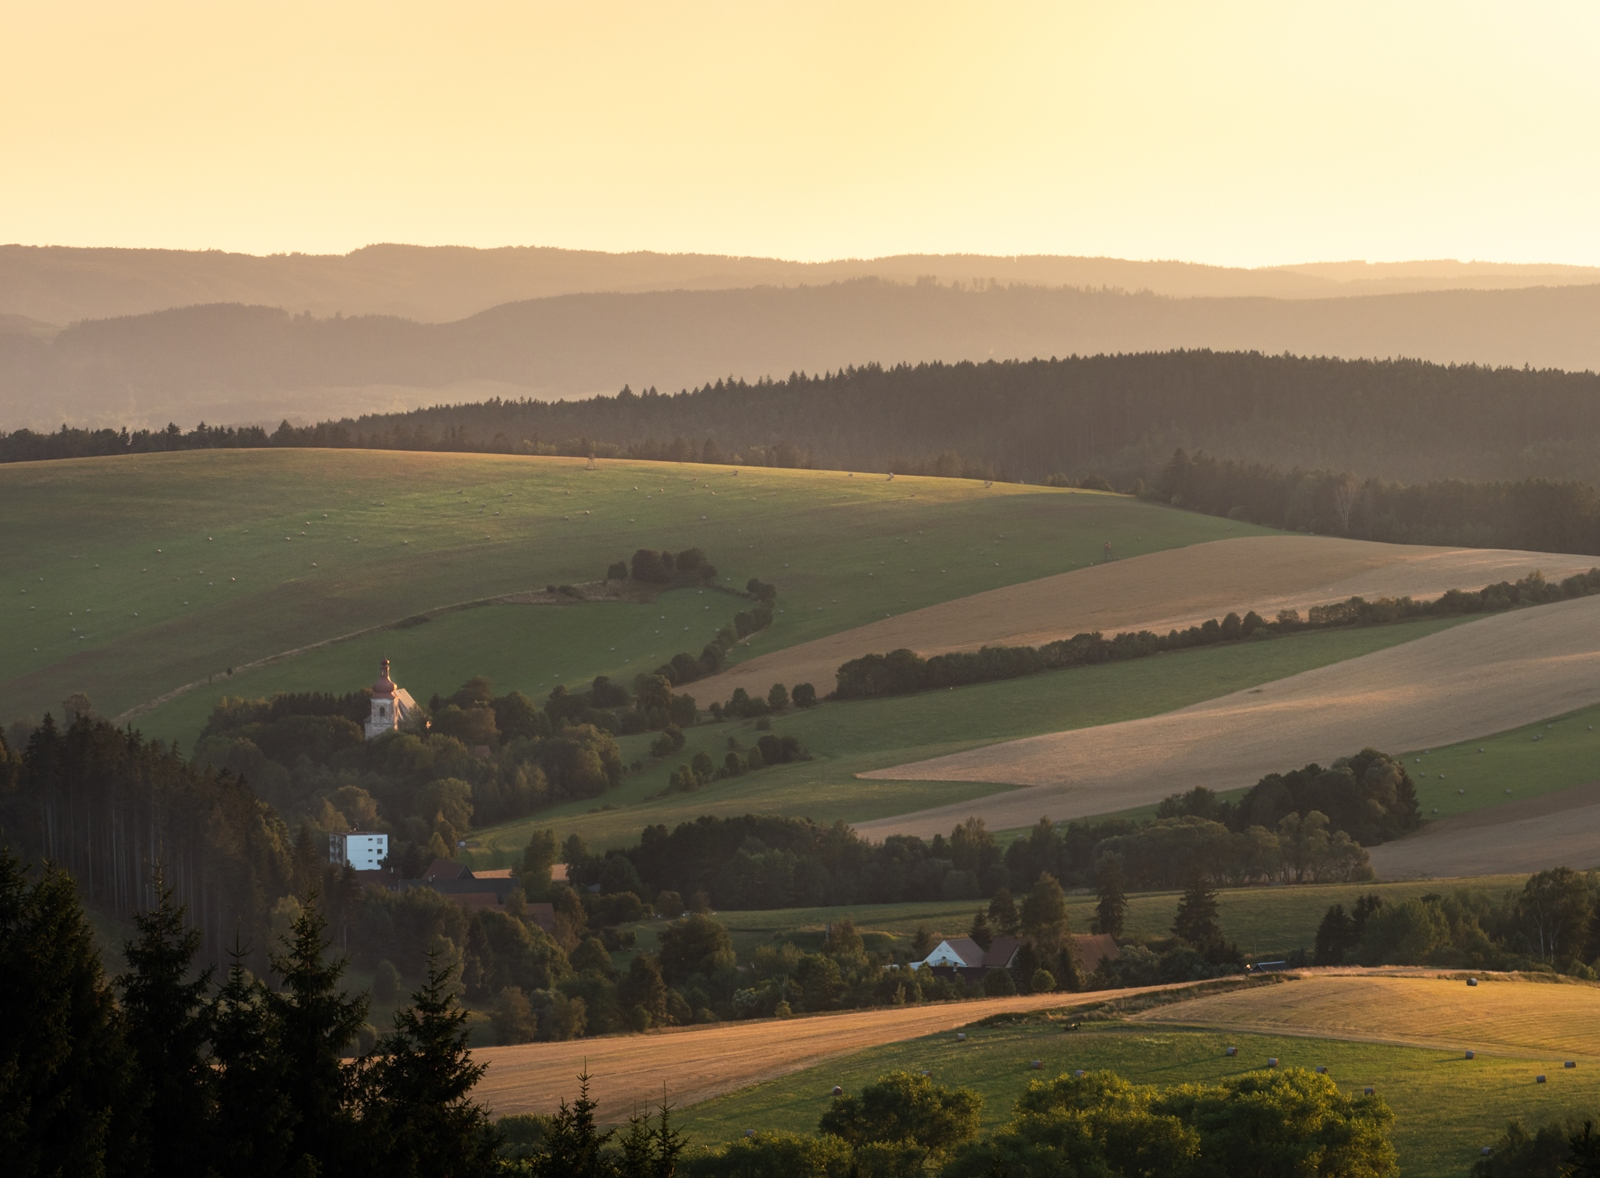 Landscape of Broumov, Czech Republic